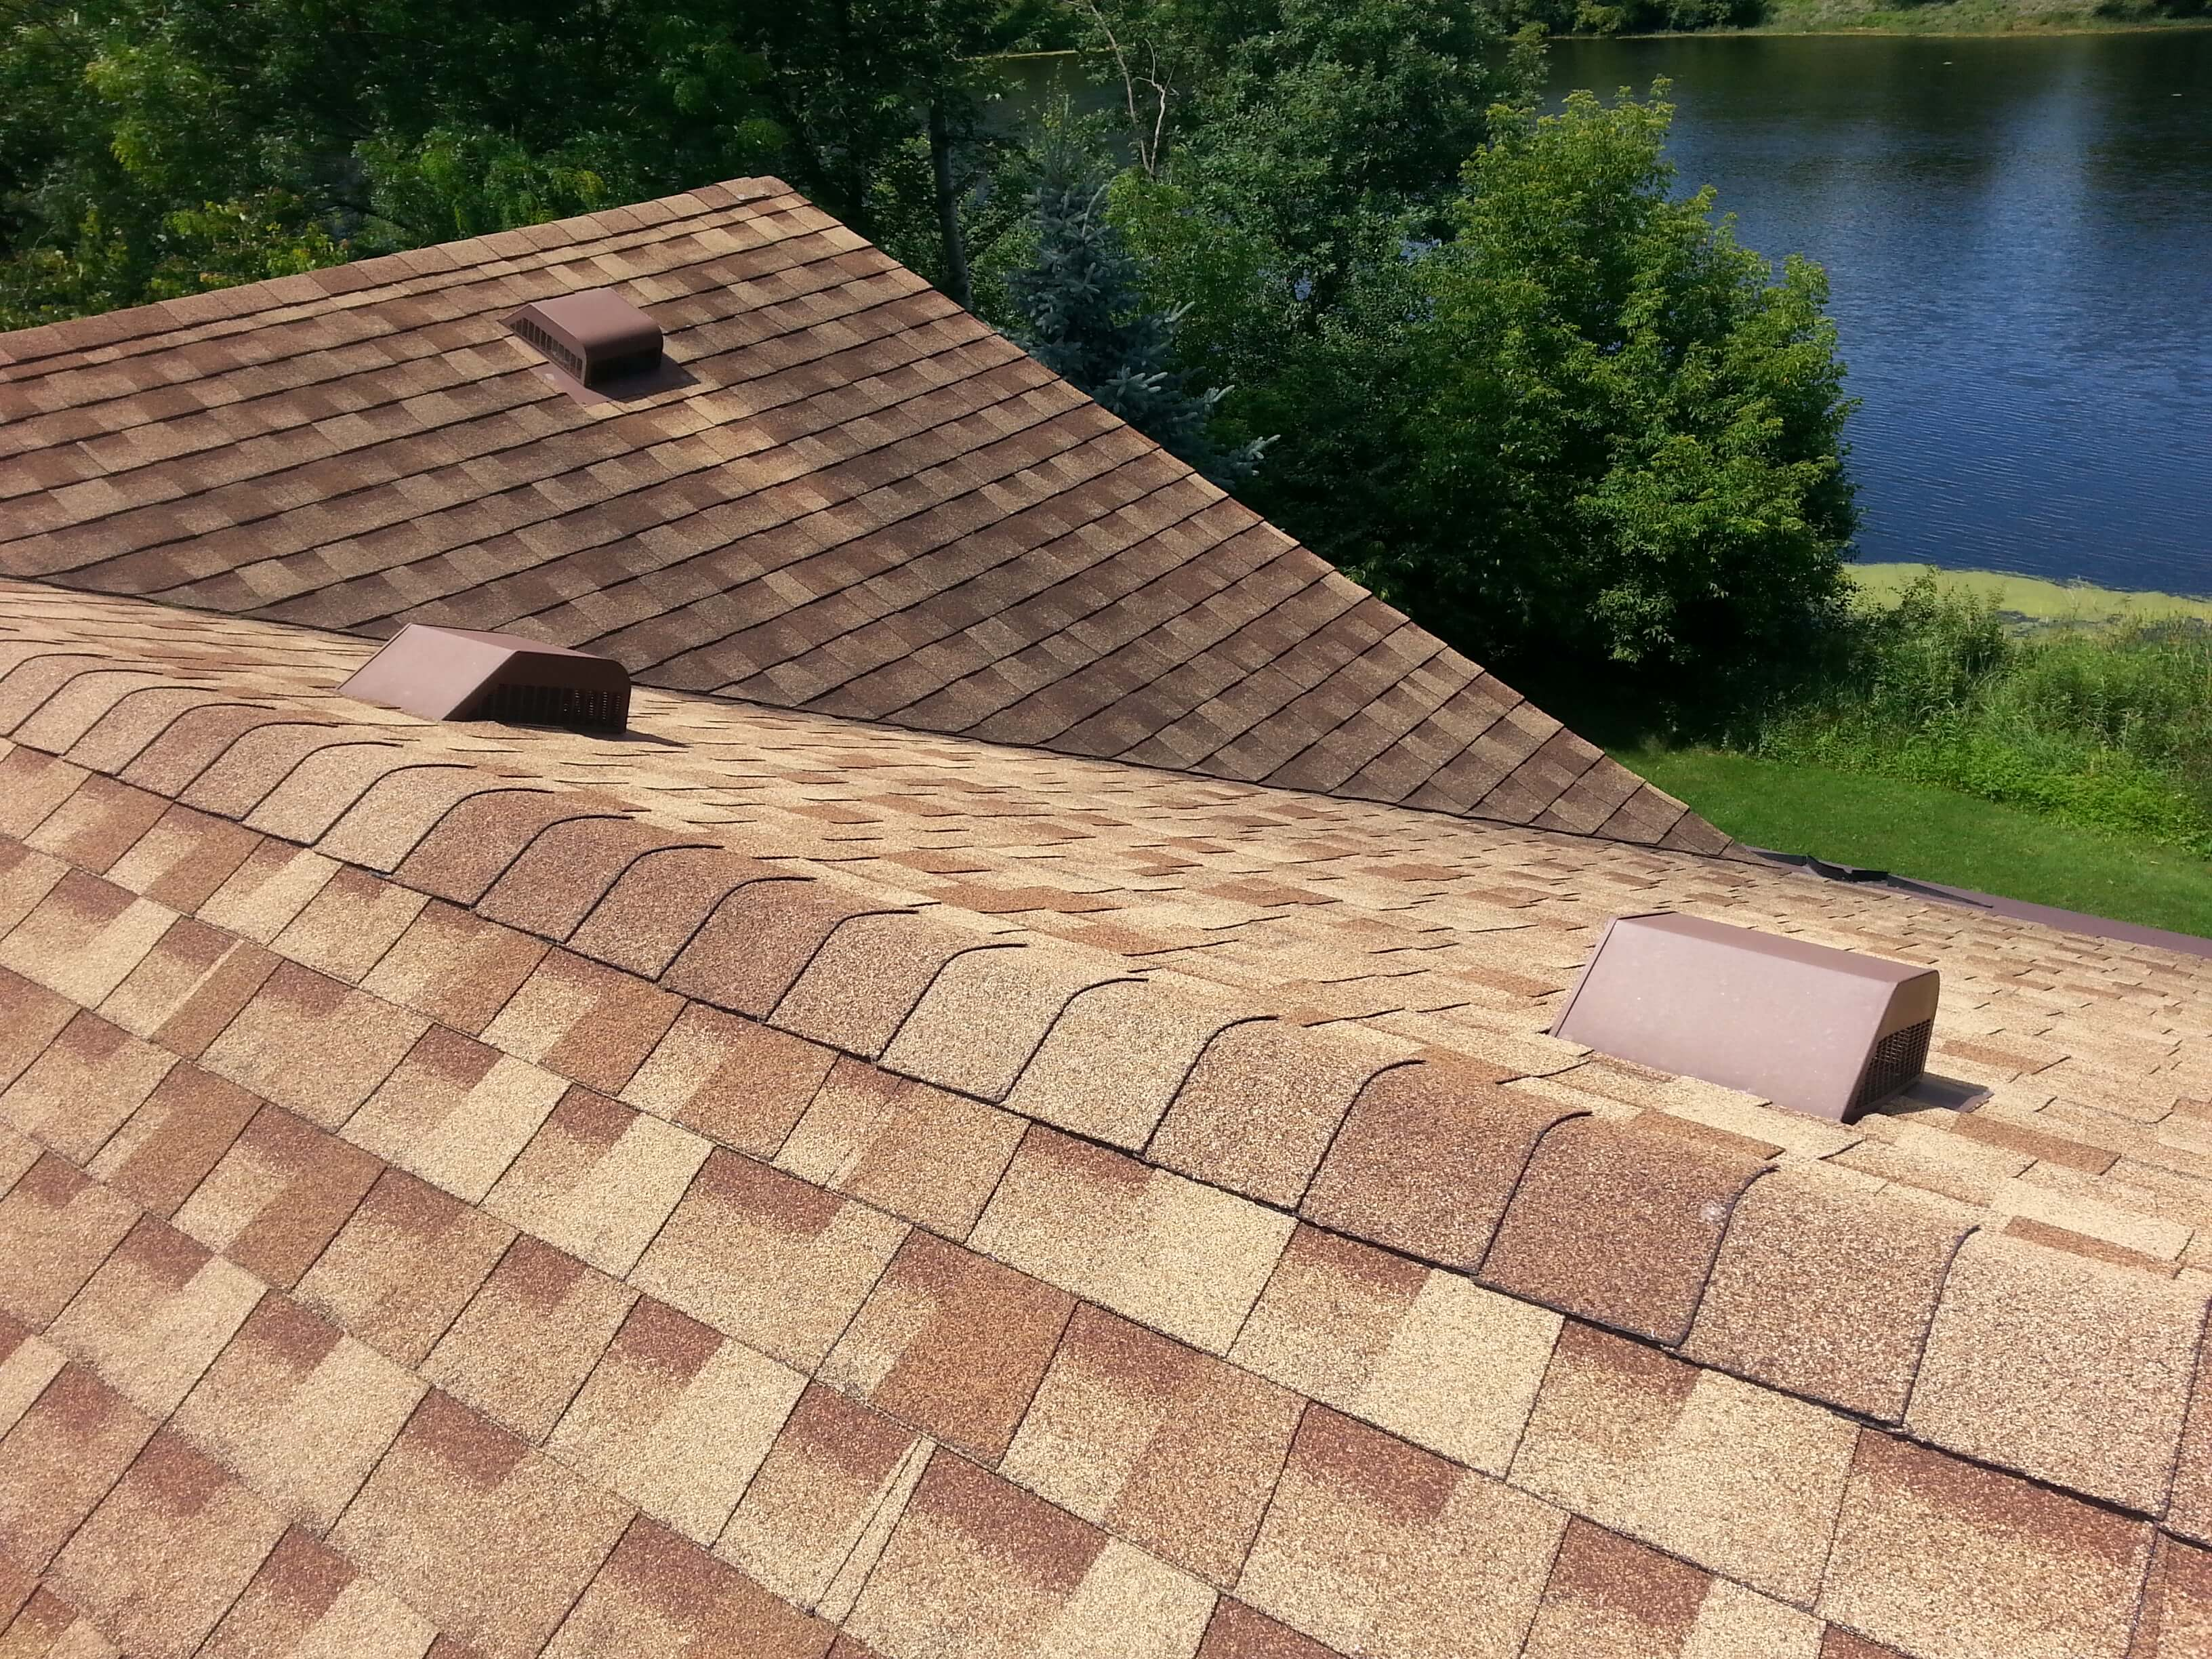 Roof Replacement Part 1 Should Contractors Use GAF Owens Corning or IKO? & Roof Replacement Part 1: Should Contractors Use GAF Owens Corning ... memphite.com